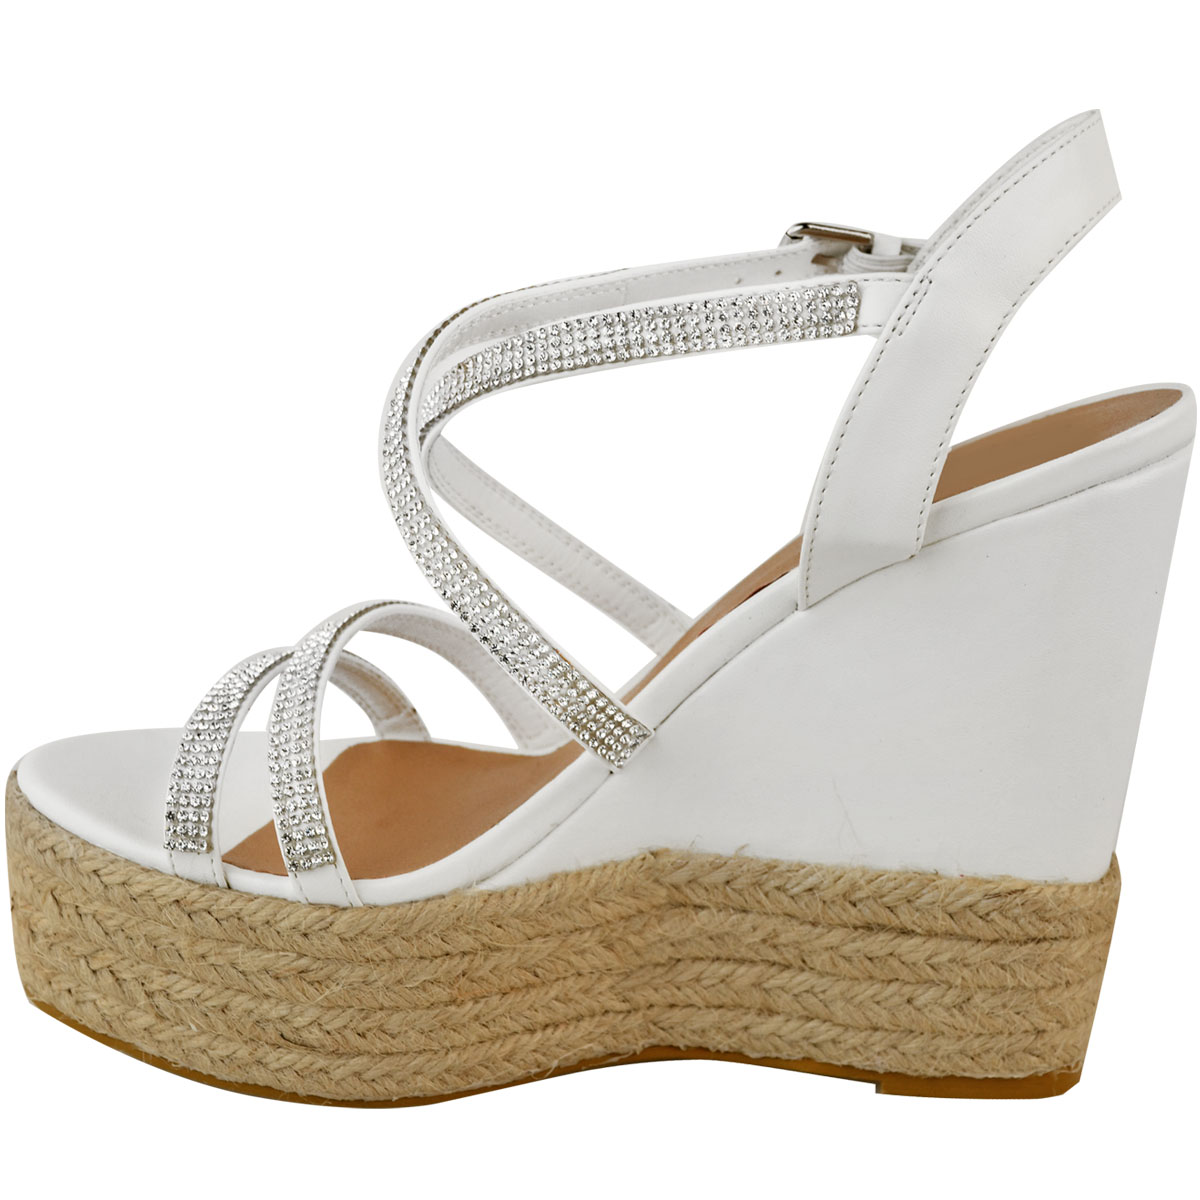 Womens-Ladies-Strappy-Diamante-Wedge-High-Heels-Sandals-Platforms-Shoes-Size-UK thumbnail 10